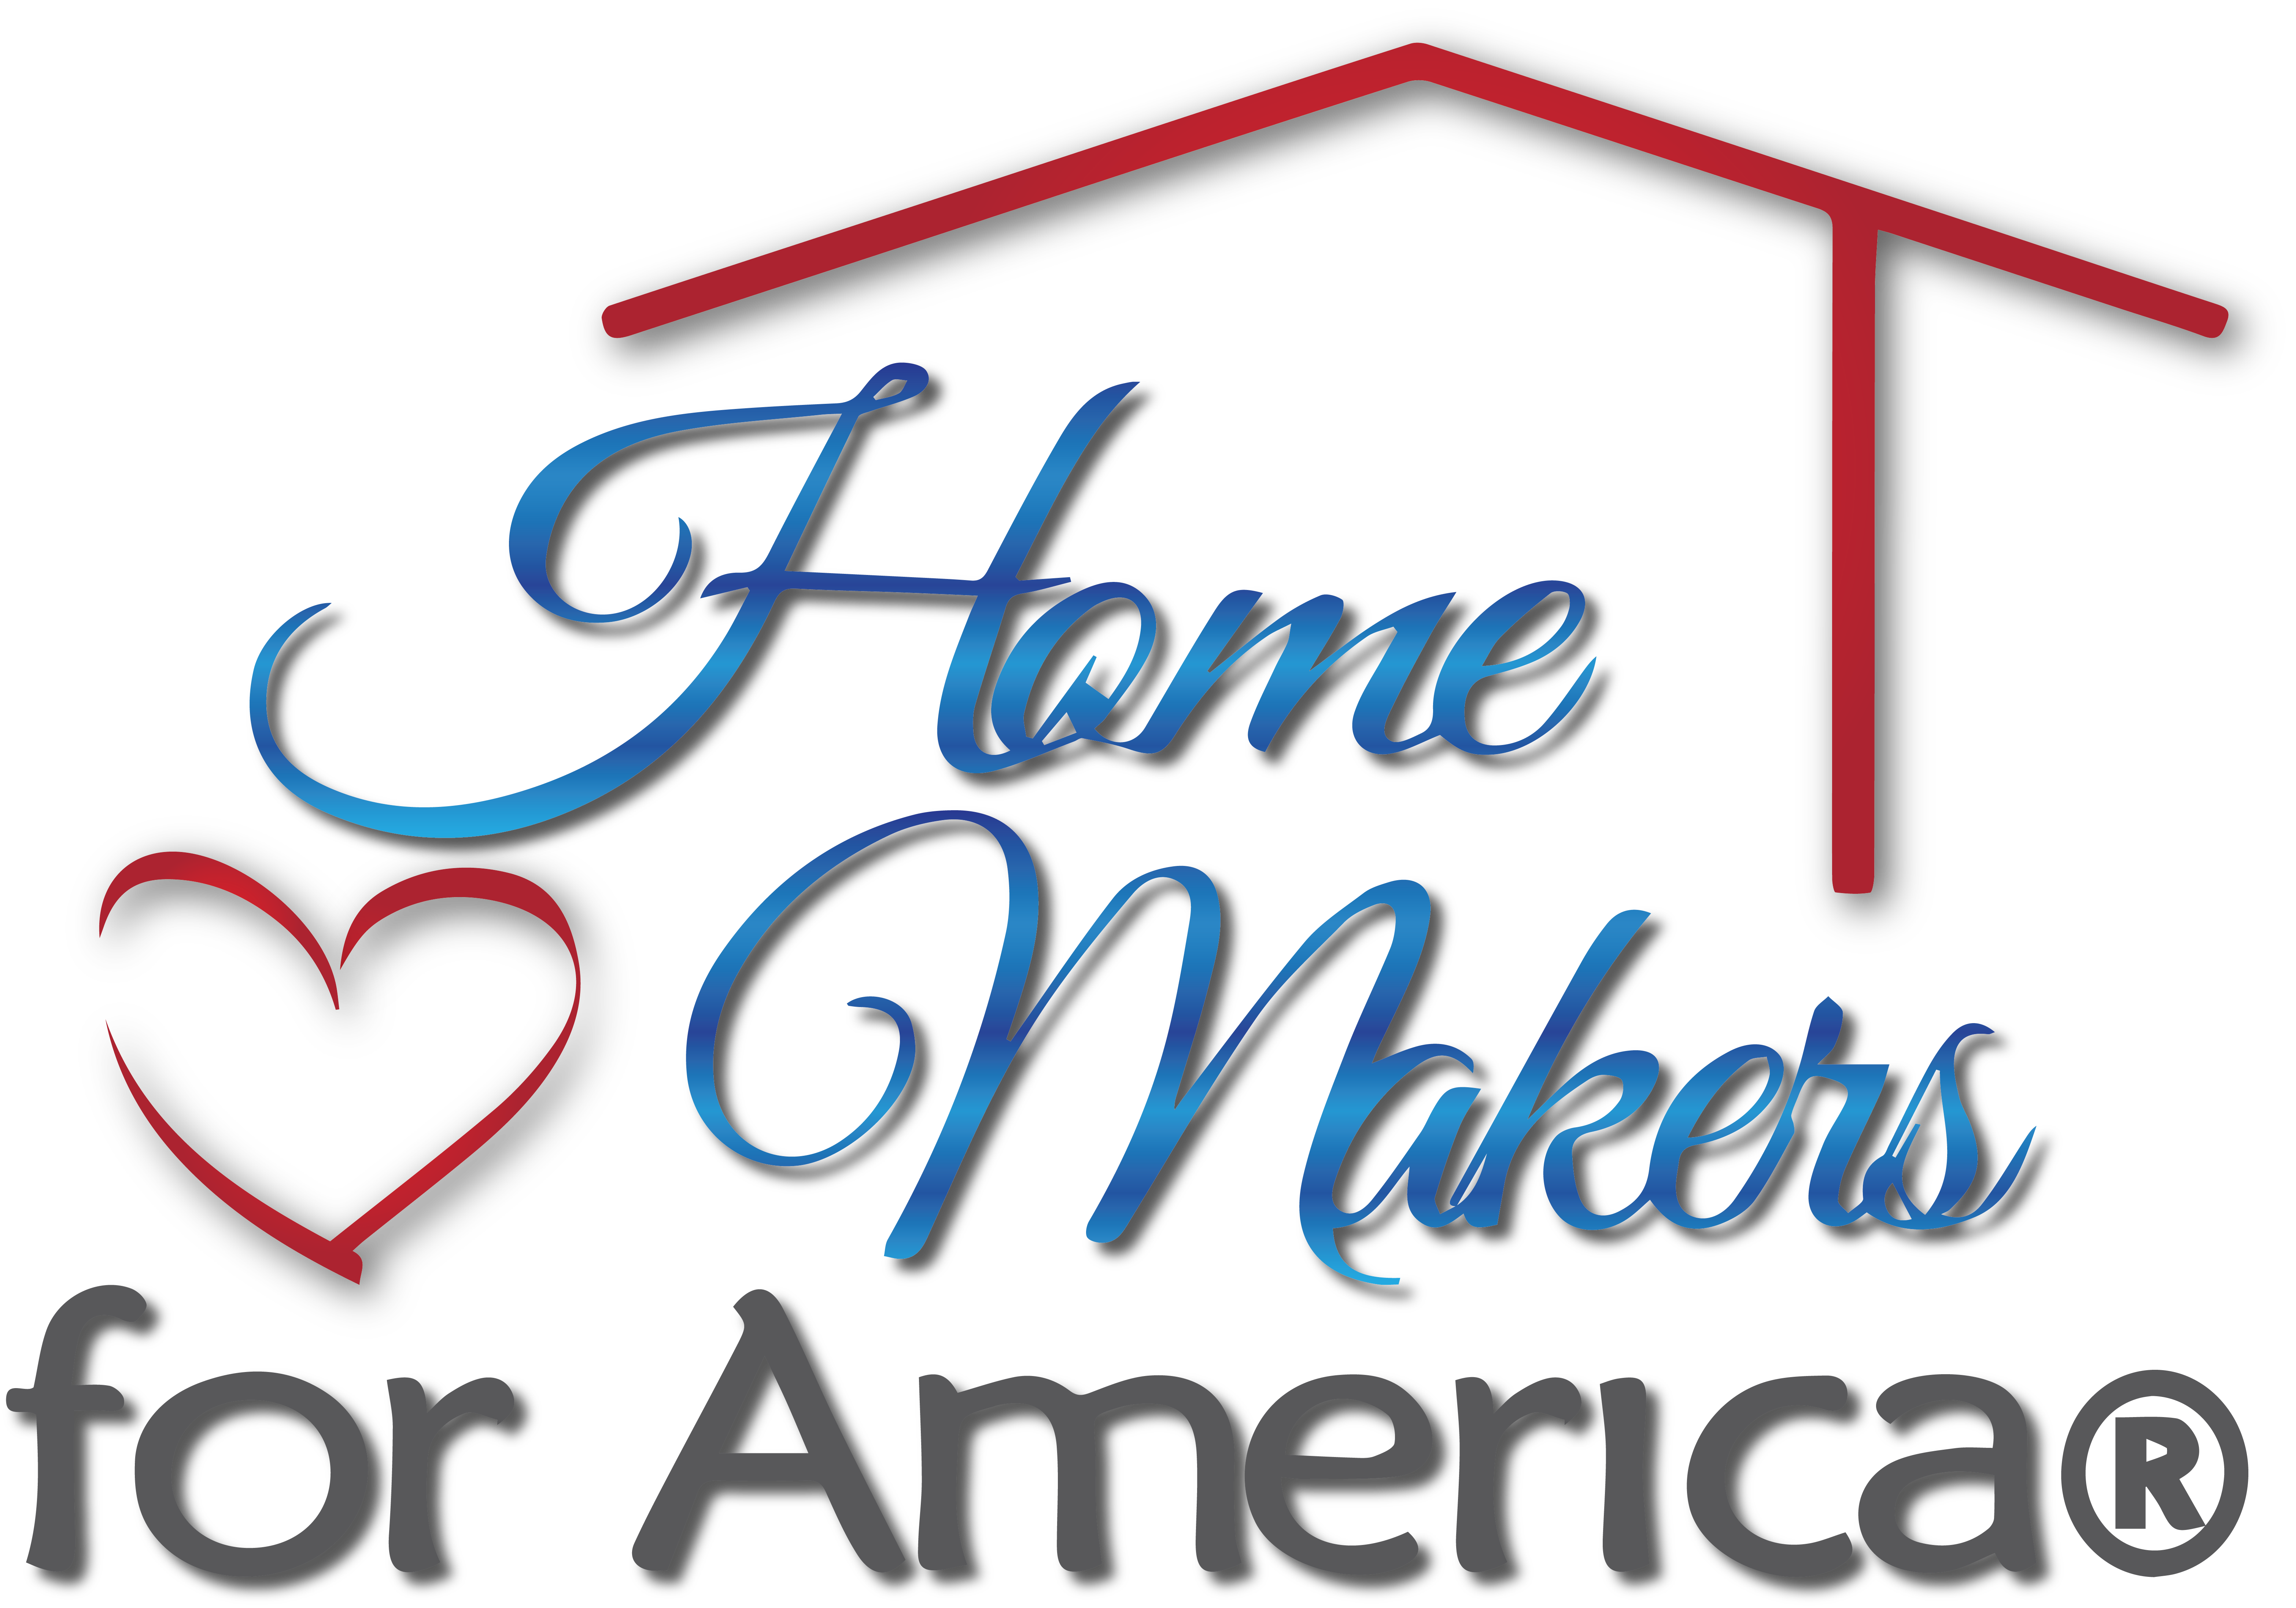 HomeMakers for America